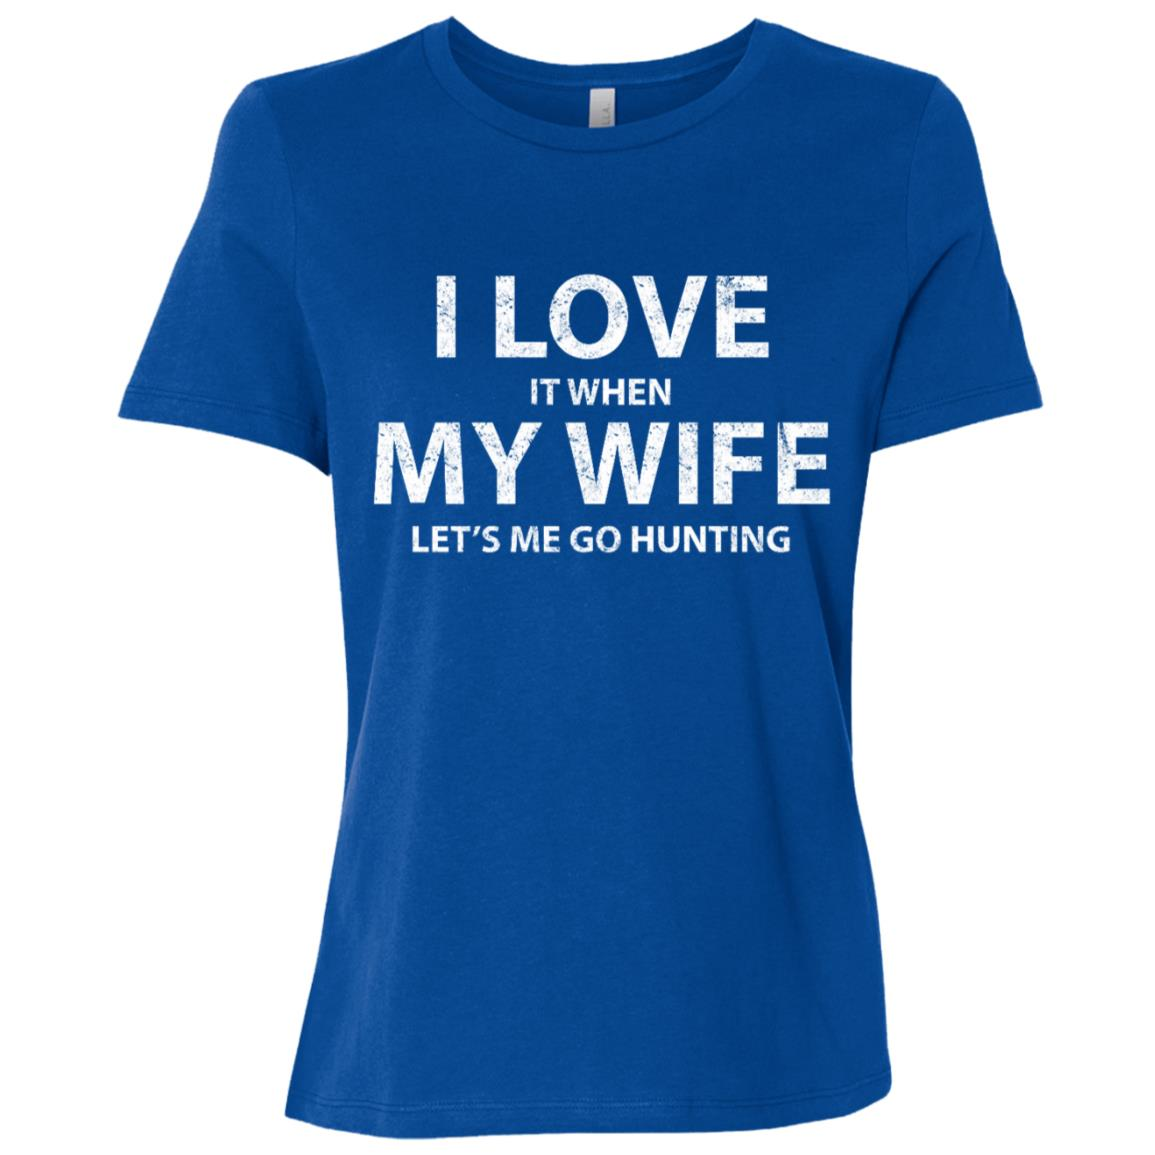 I Love When My Wife Let's Me Go Hunting Women Short Sleeve T-Shirt